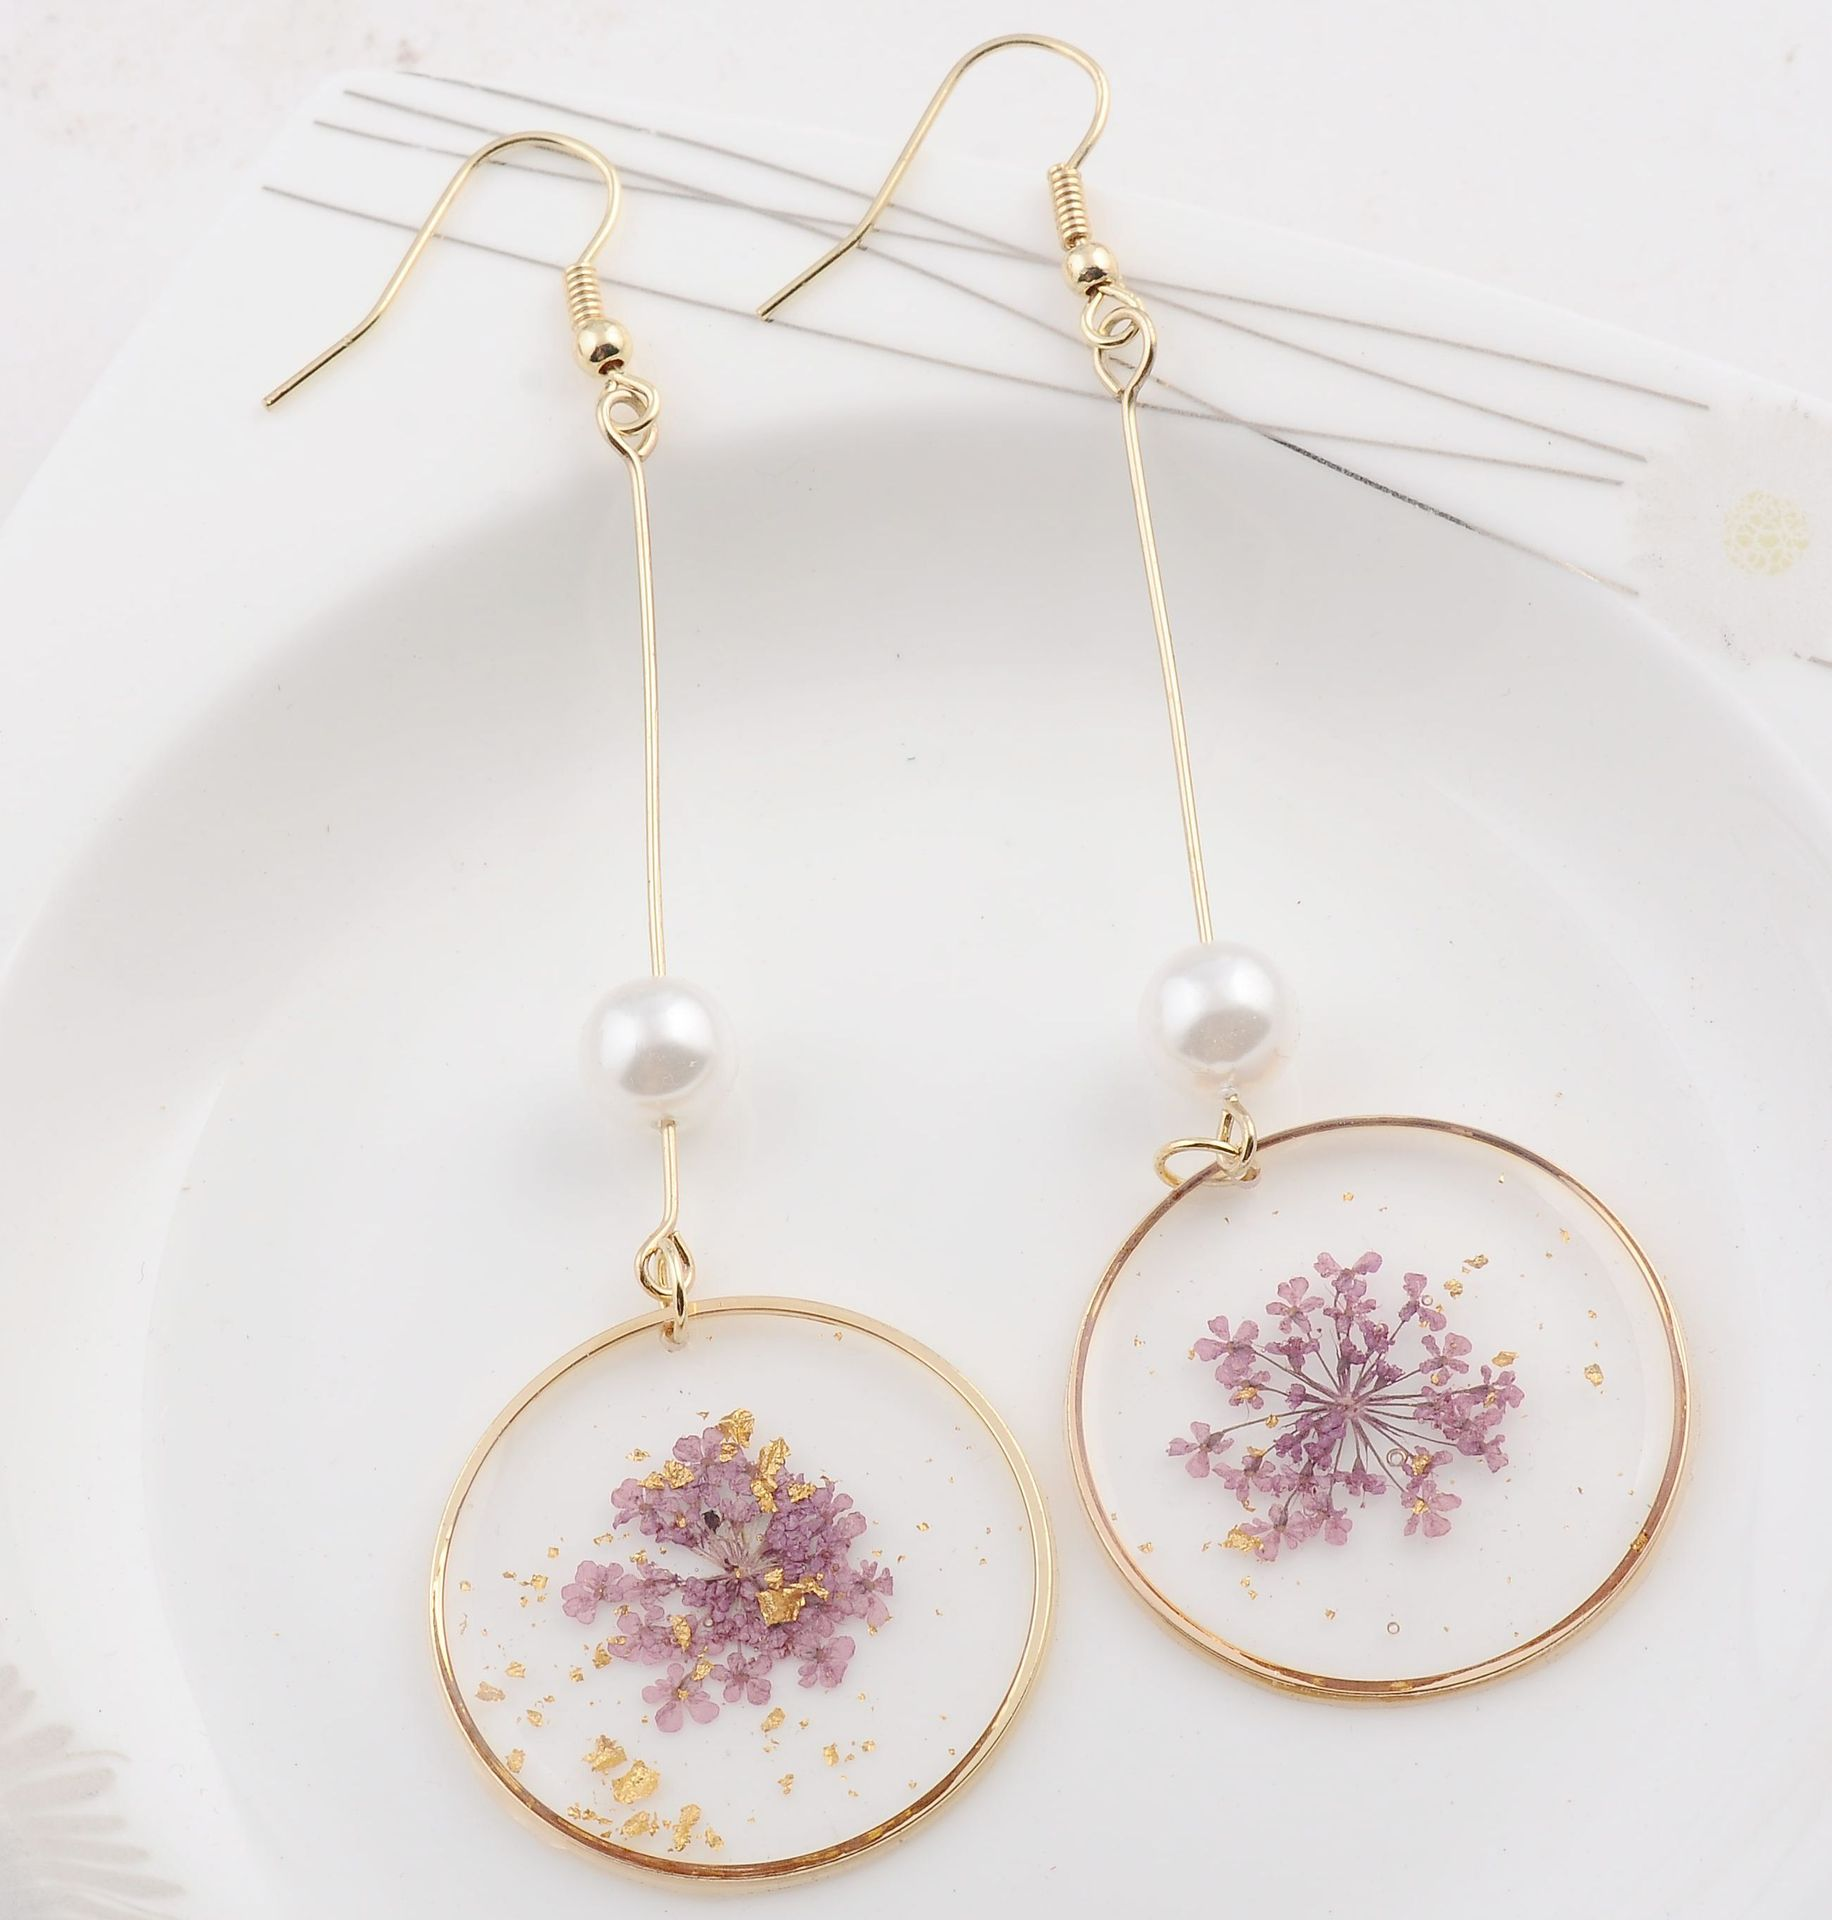 UJBOX Japan Korea Round Transparent Resin Flowers Earrings Women Simulated pearl Long Party Statement Earrings(China)